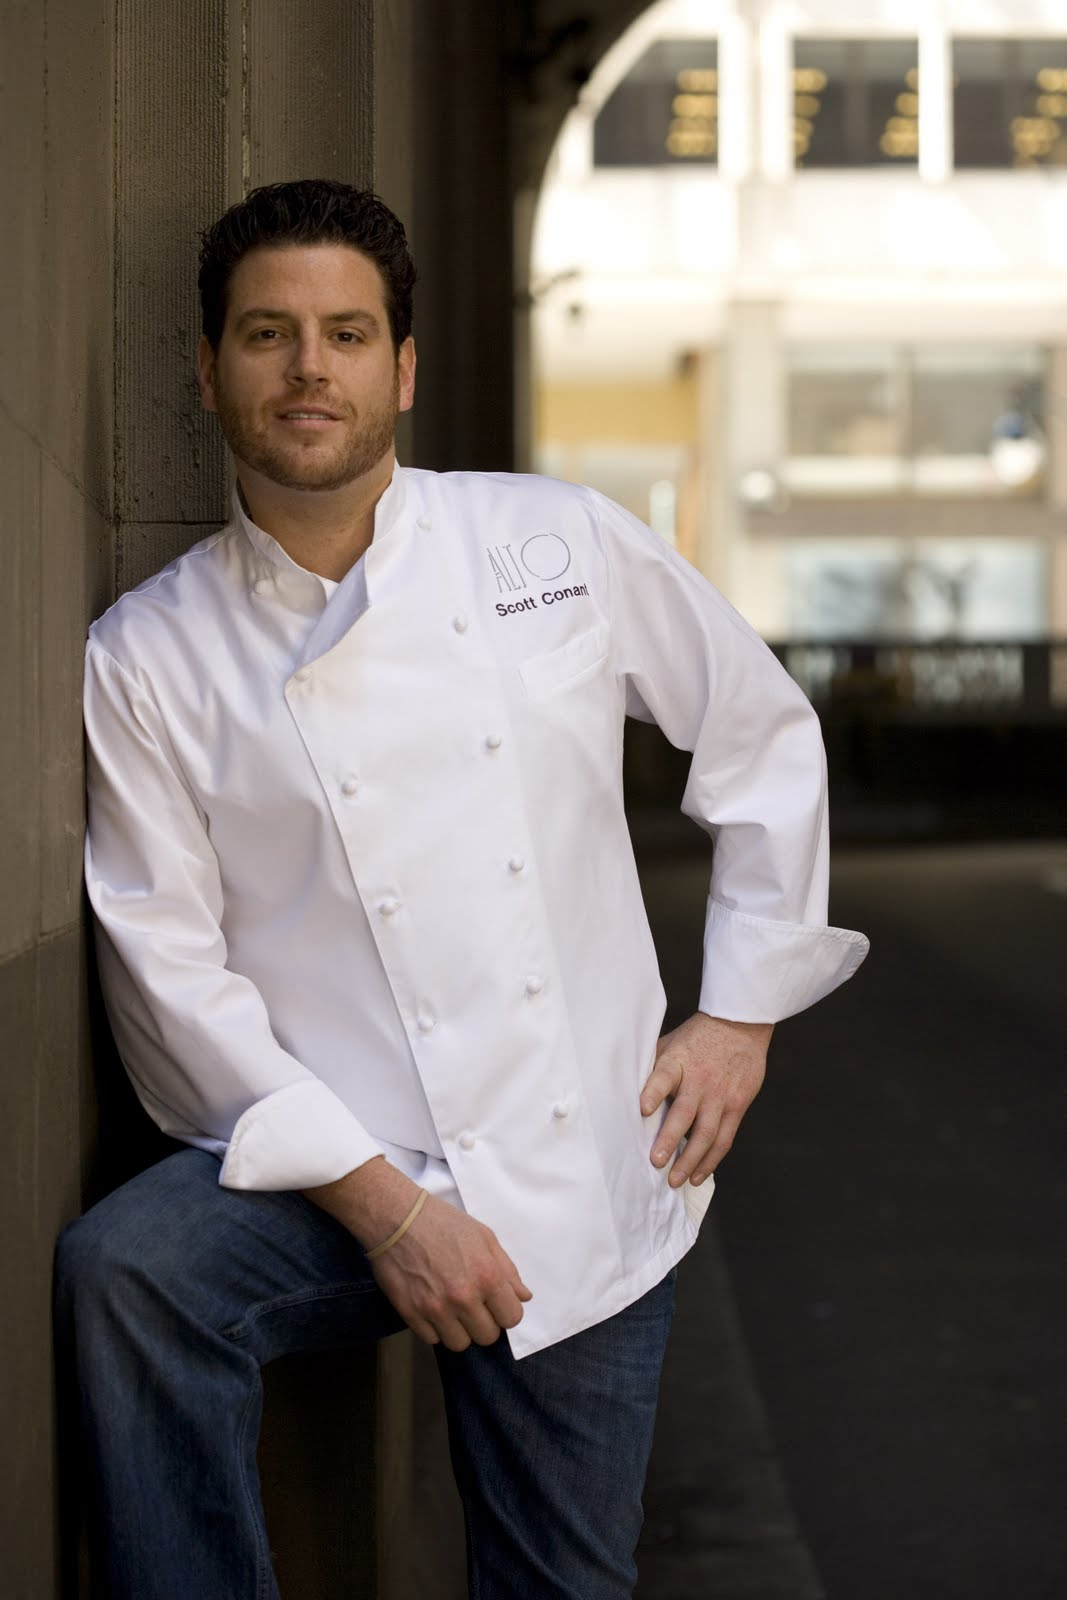 Chef Scott Conant Wife Meltem http://everybodymoonjump.blogspot.com/2011/04/friday-food-network-fuck-scott-conant.html